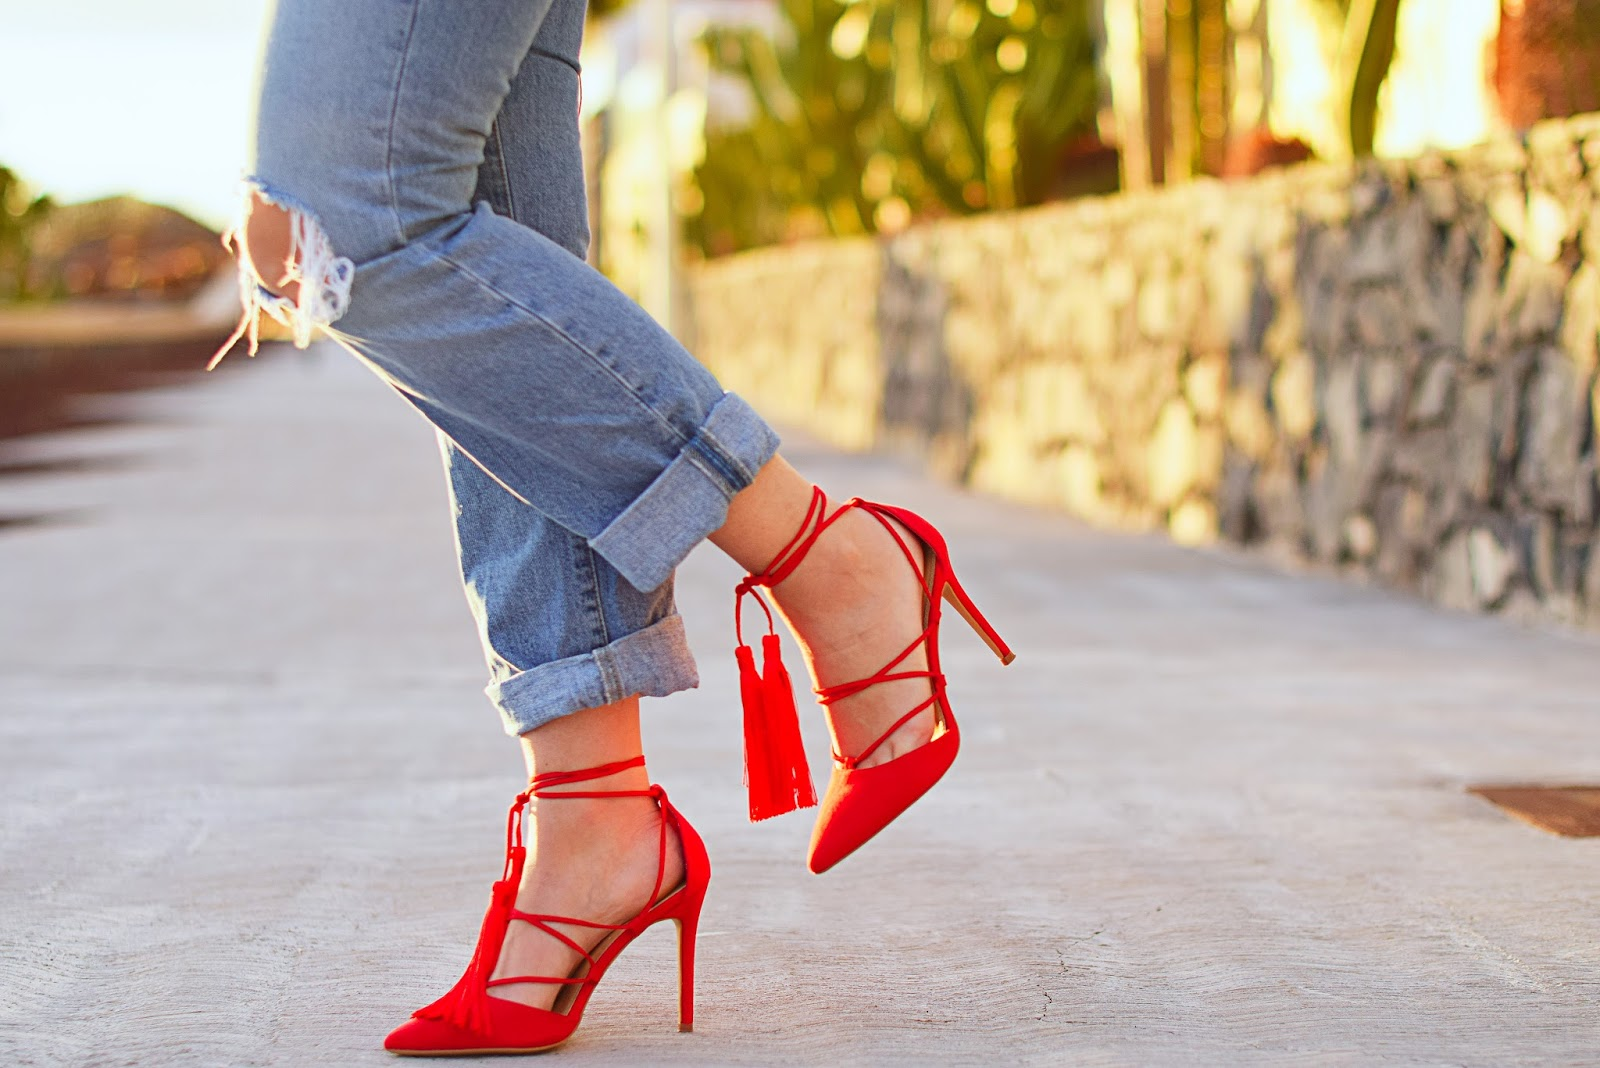 nery hdez, zapatos con borla, red shoes with tassel, jeans, MARYPAZ